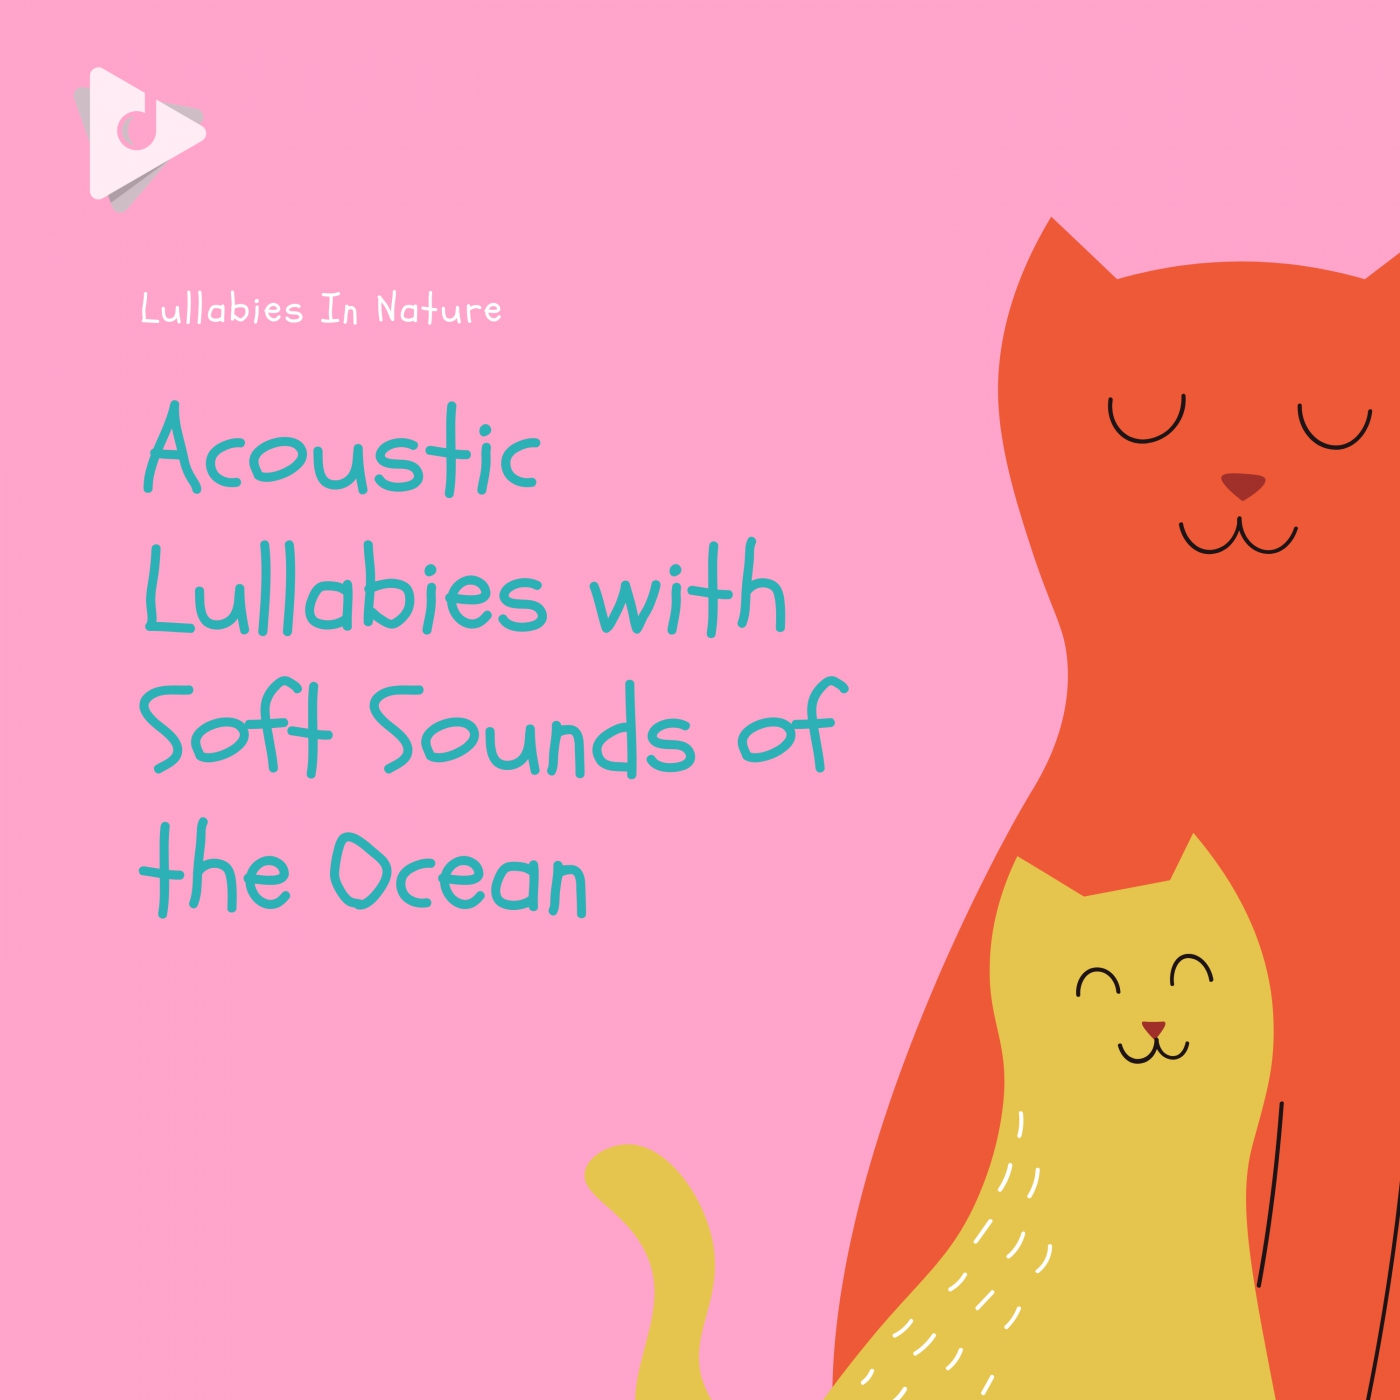 Acoustic Lullabies with Soft Sounds of the Ocean